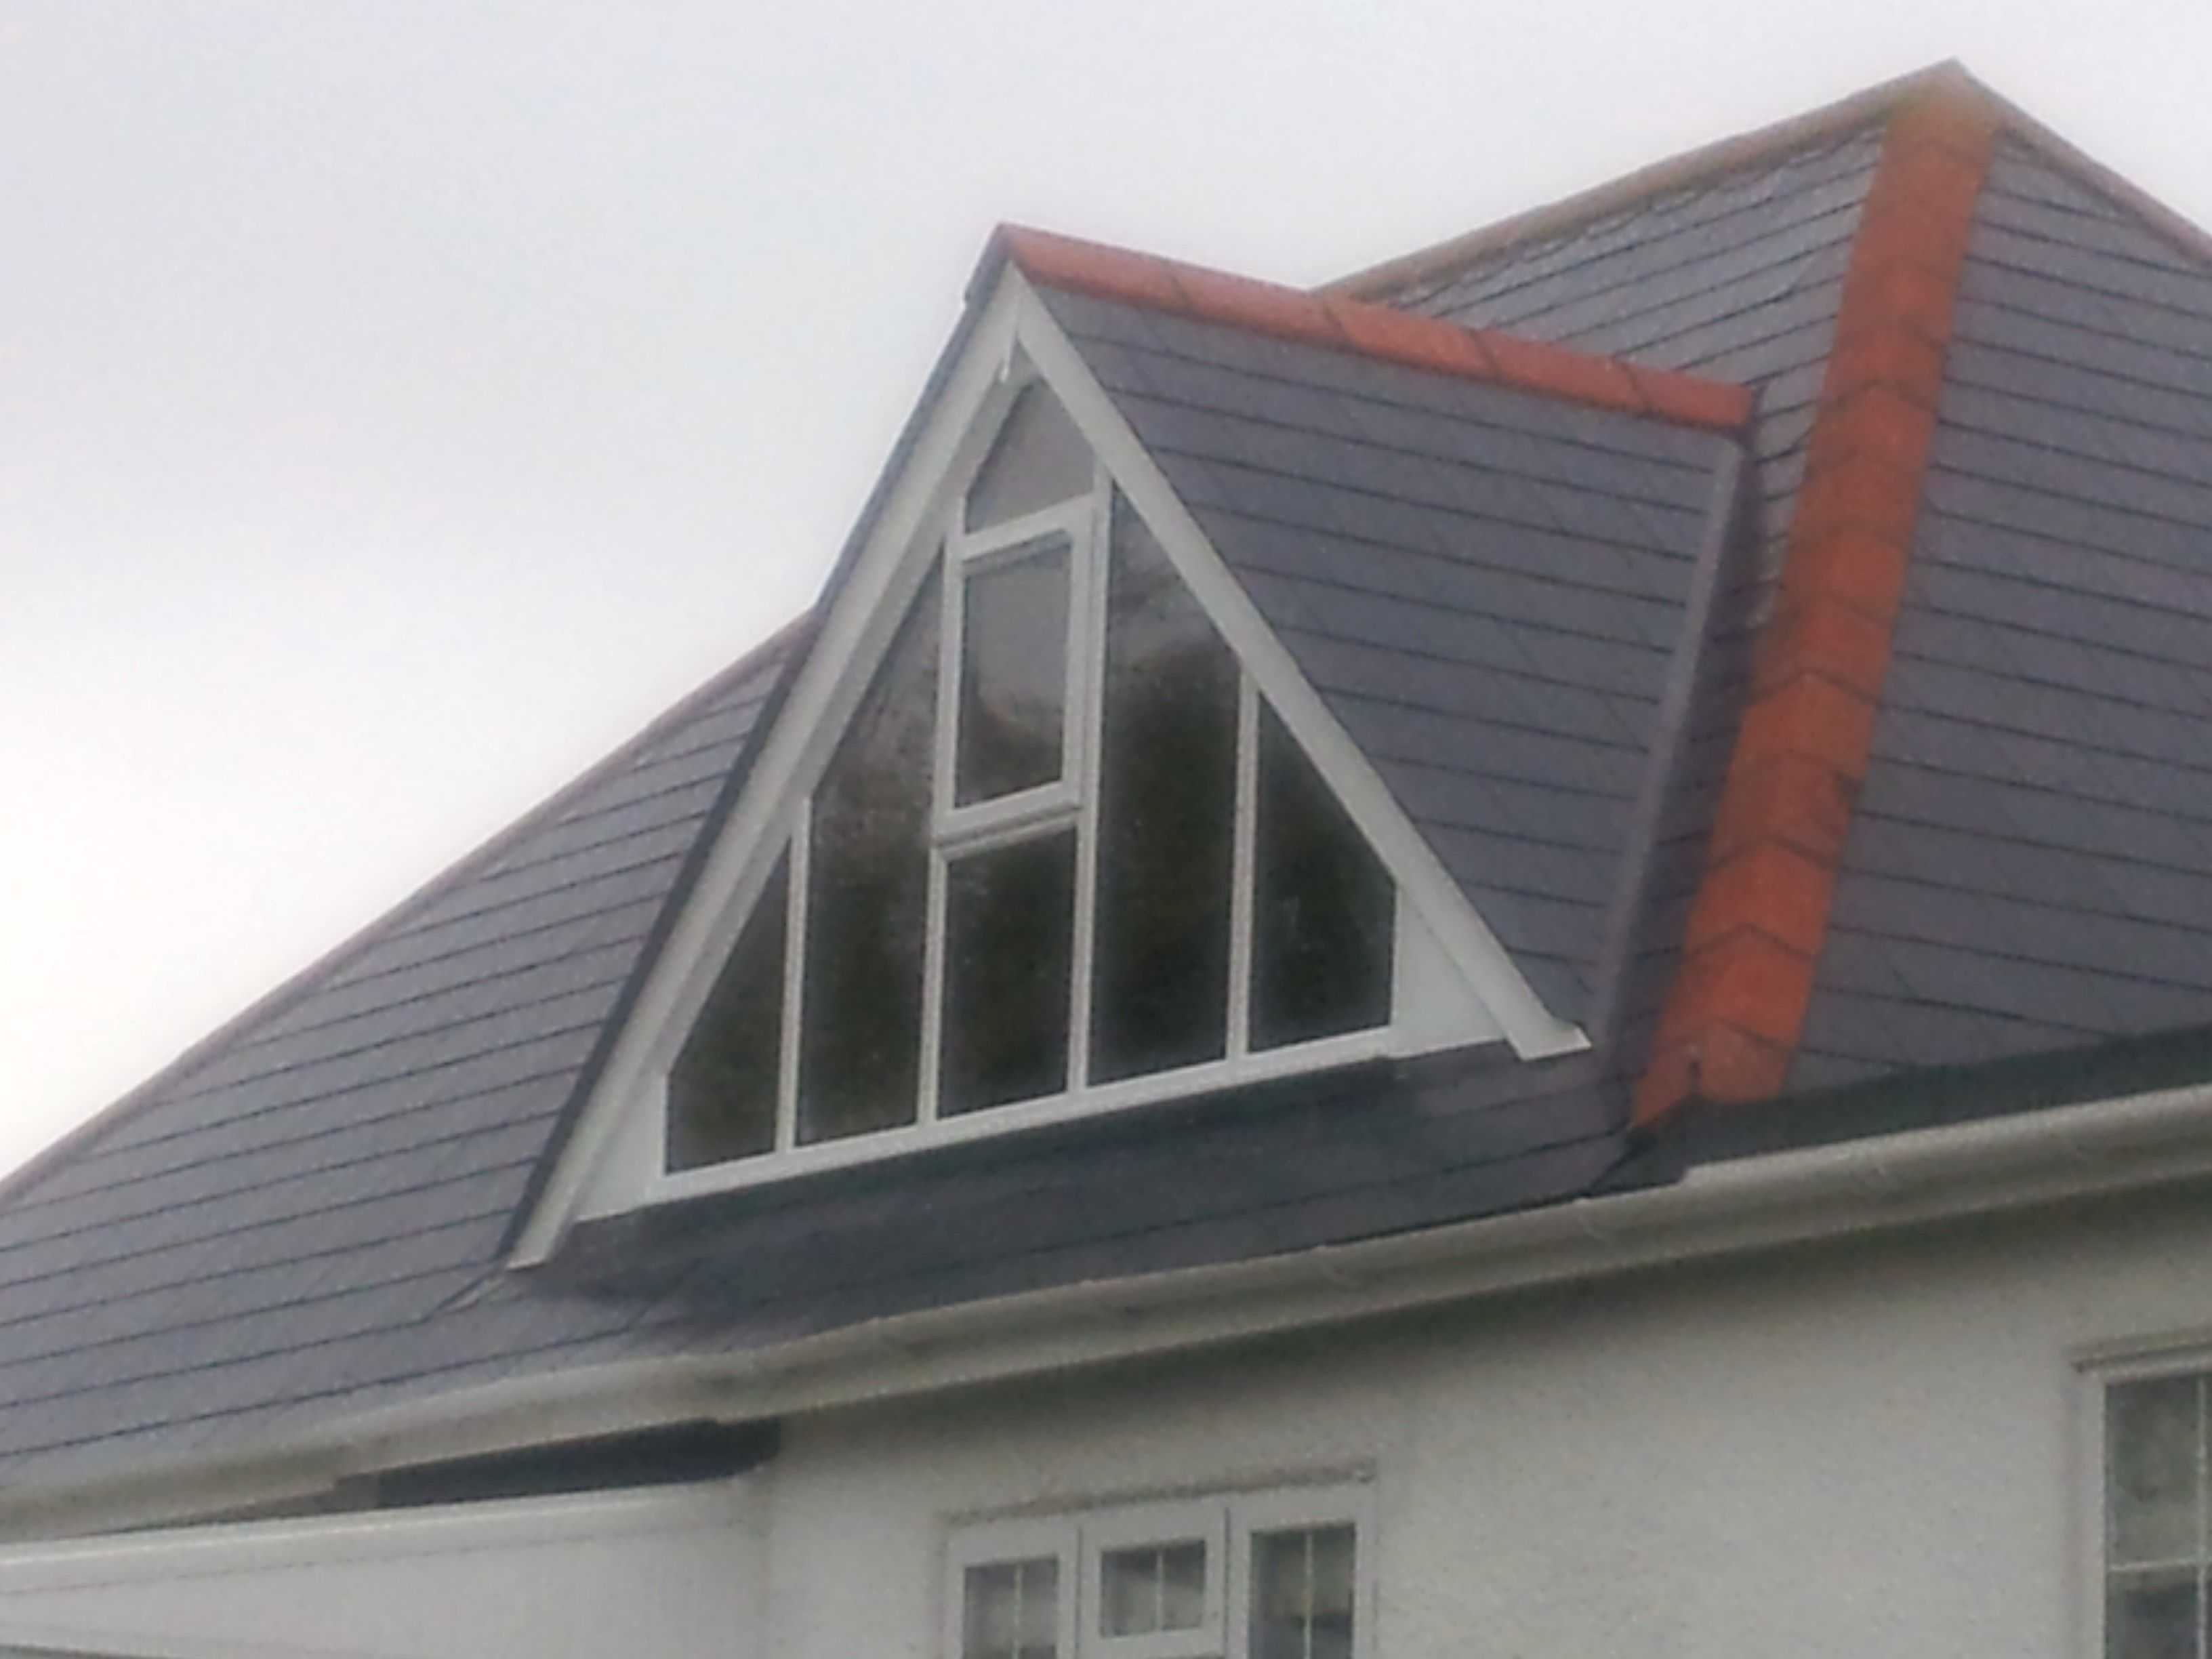 Glass Gable Ended Dormer Window Room With A View Dormer Windows Dormer Loft Conversion Dormers